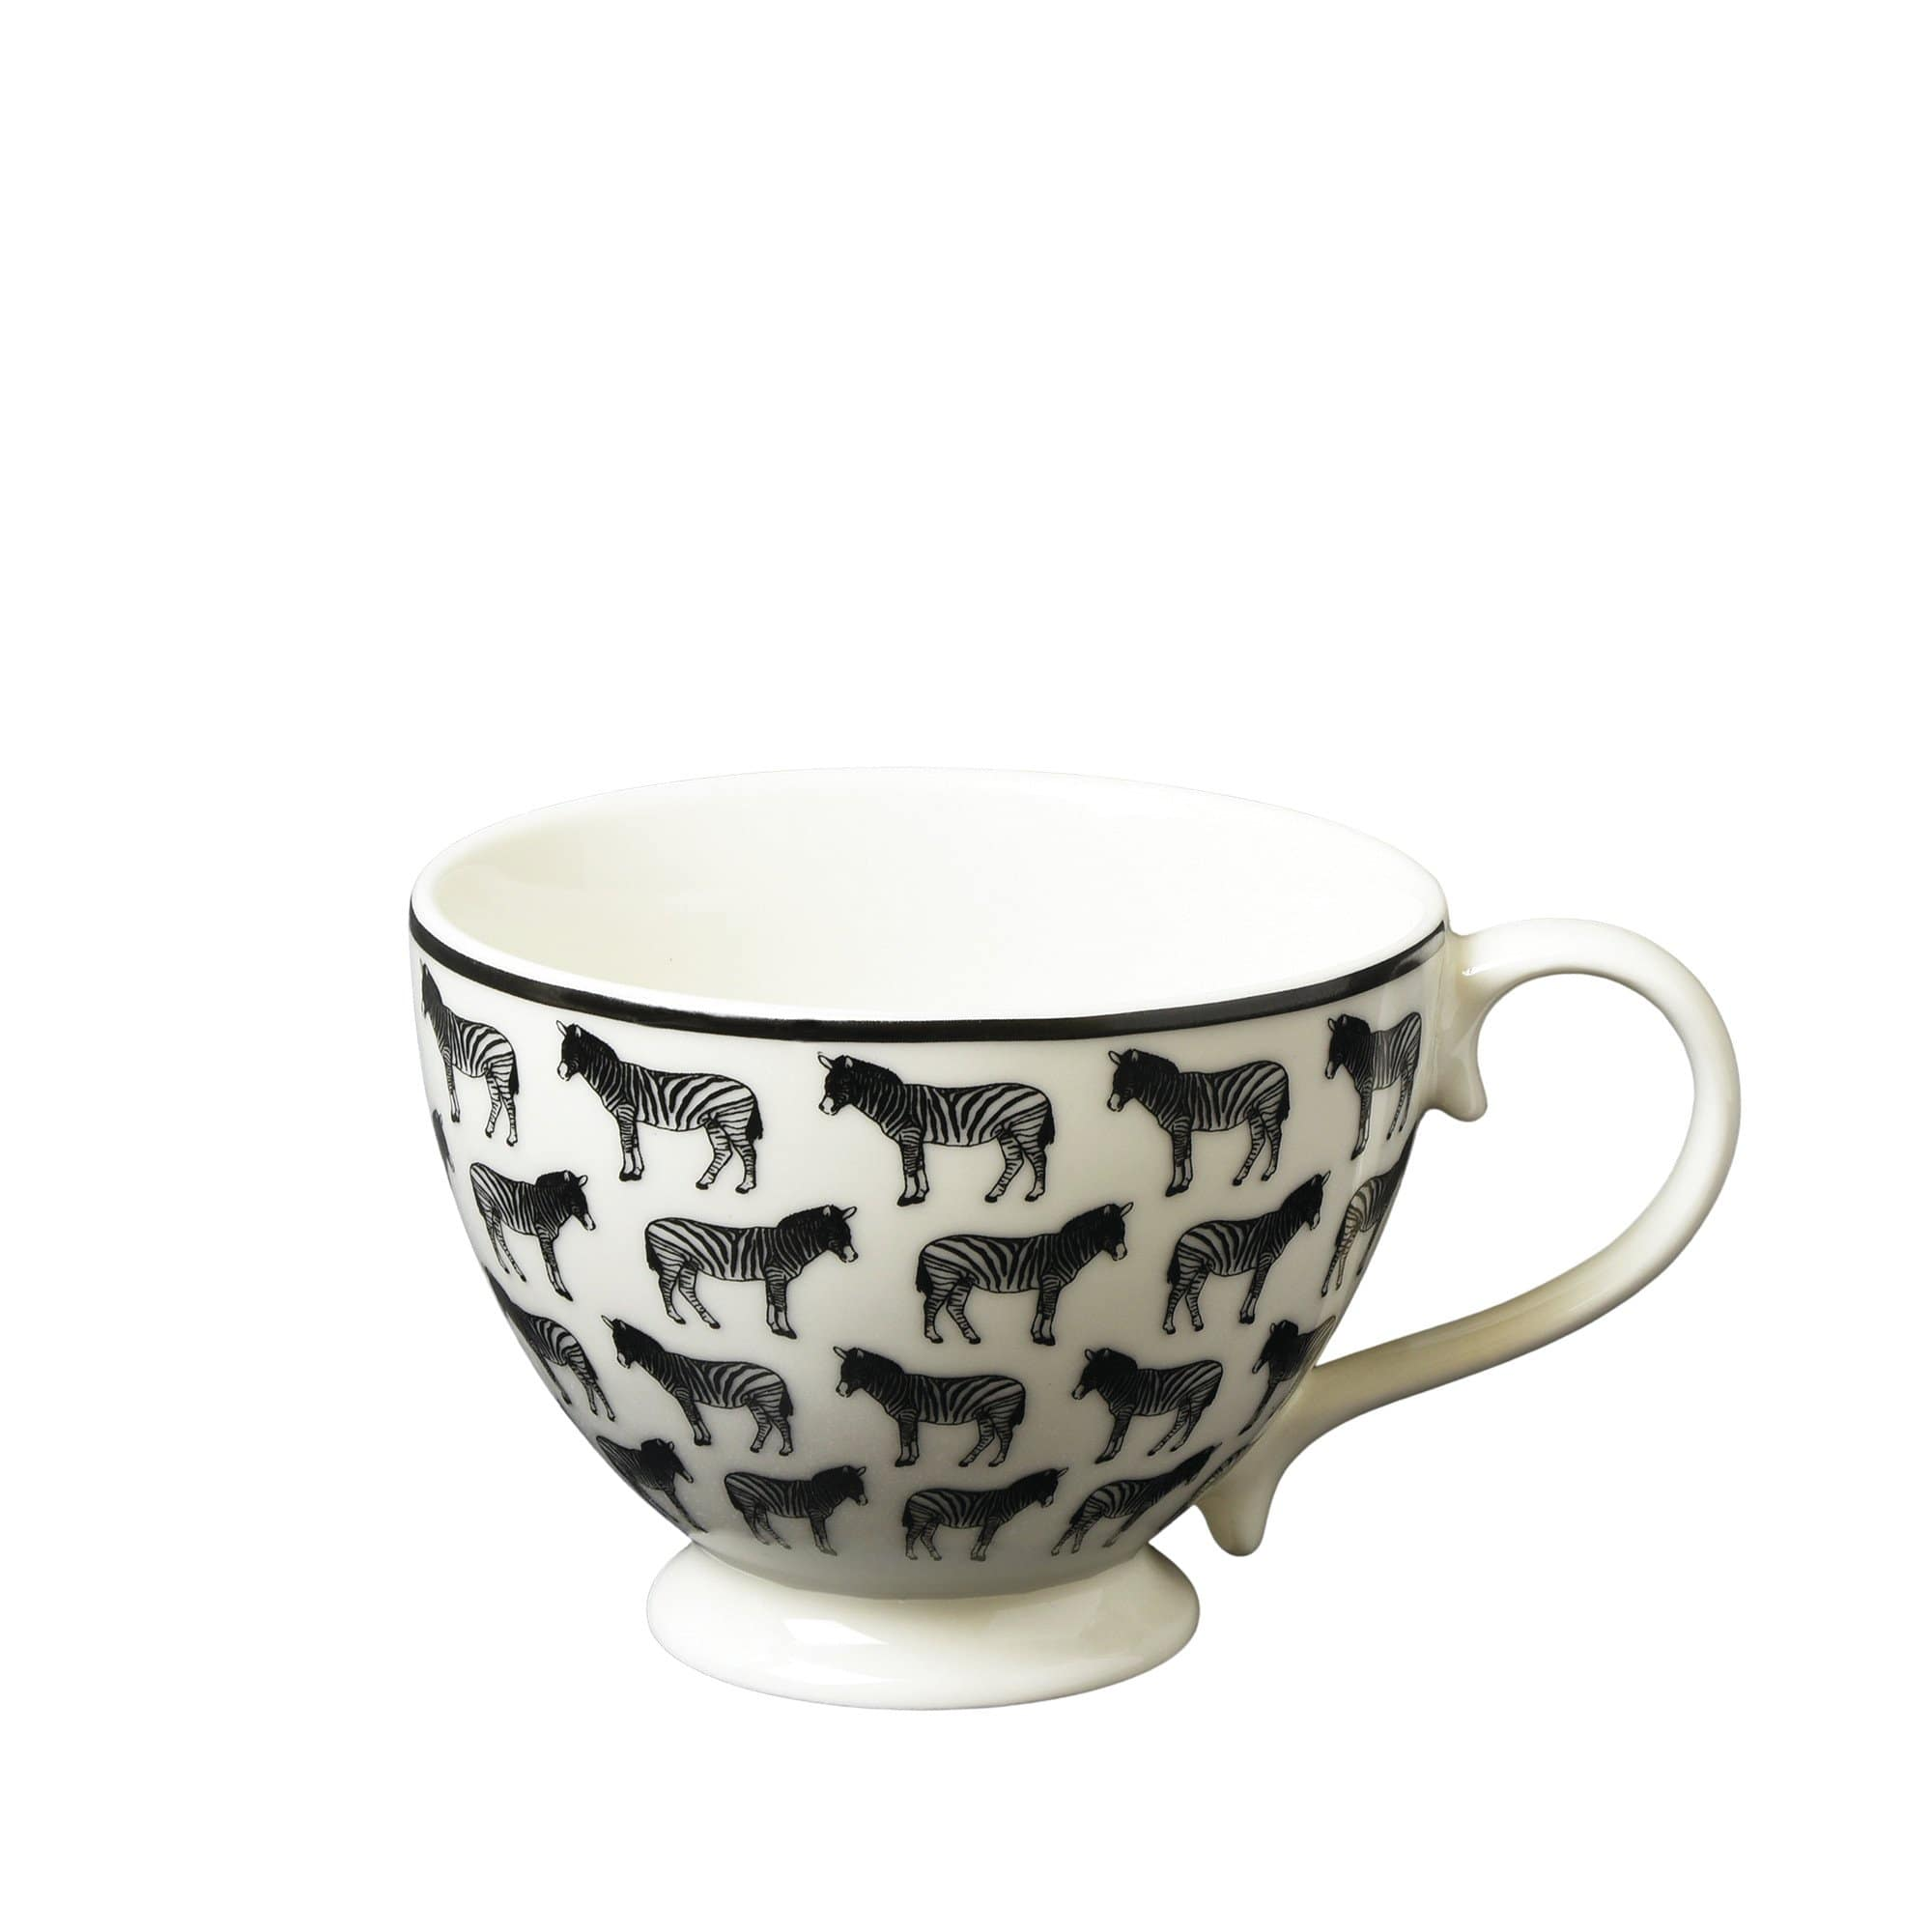 Candlelight Home Mug Animal Luxe Footed Mug All Over Zebra Print Black 6PK